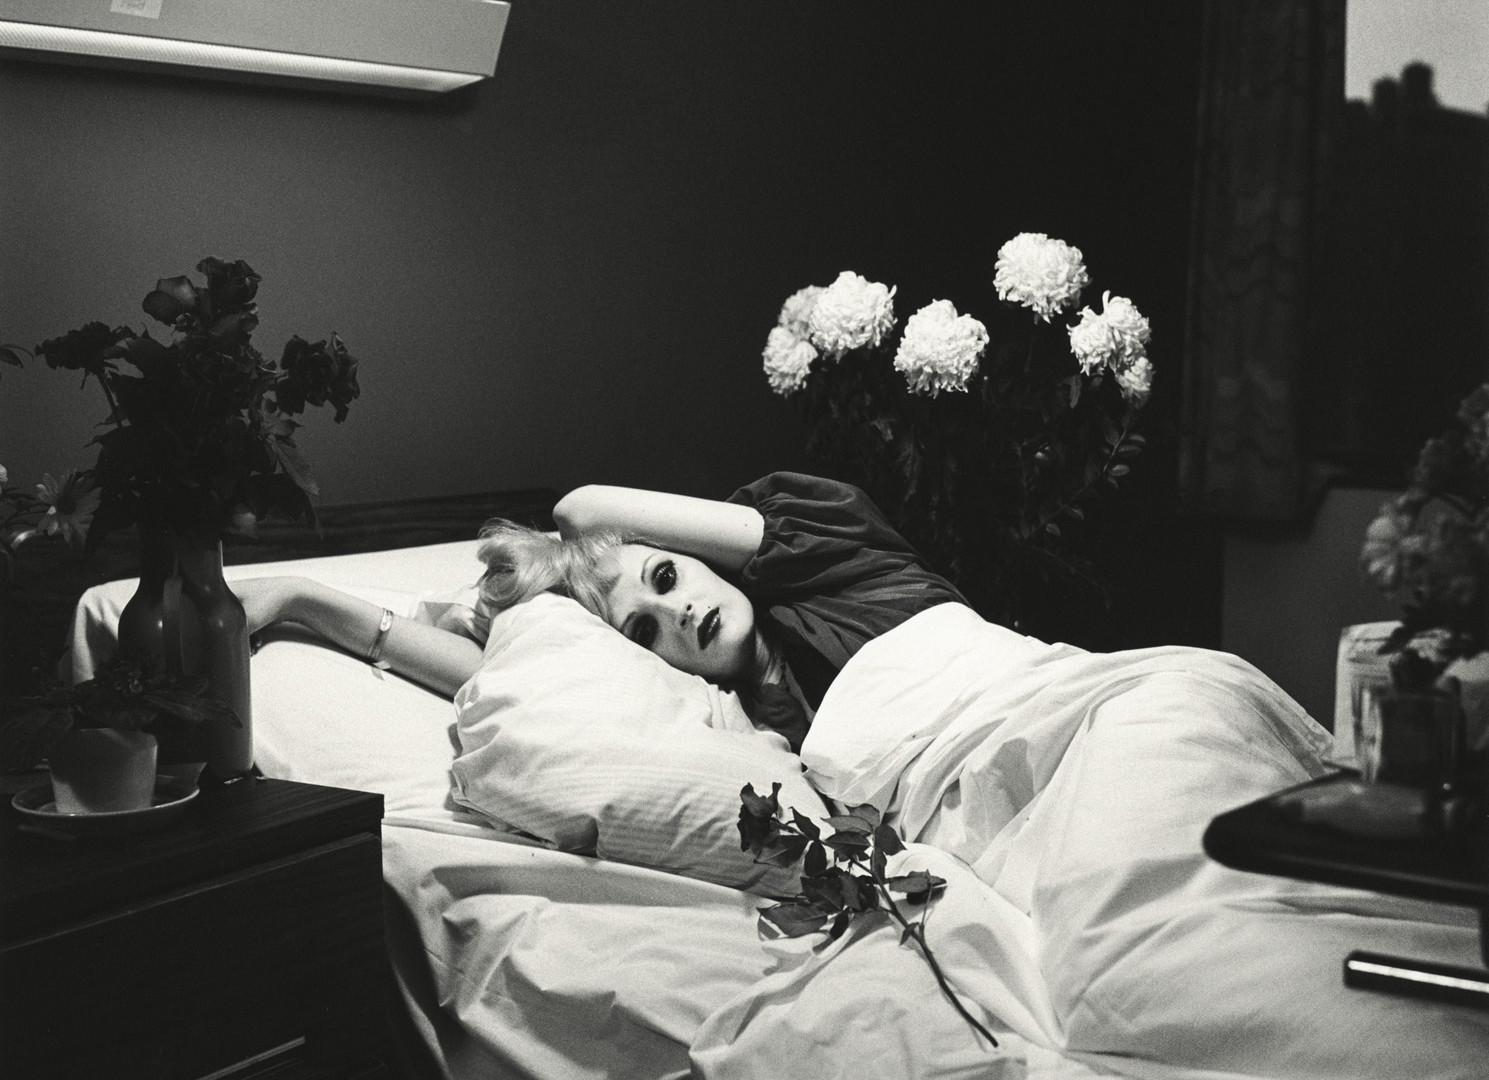 Peter Hujar, Candy Darling on Her Deathbead, 1973